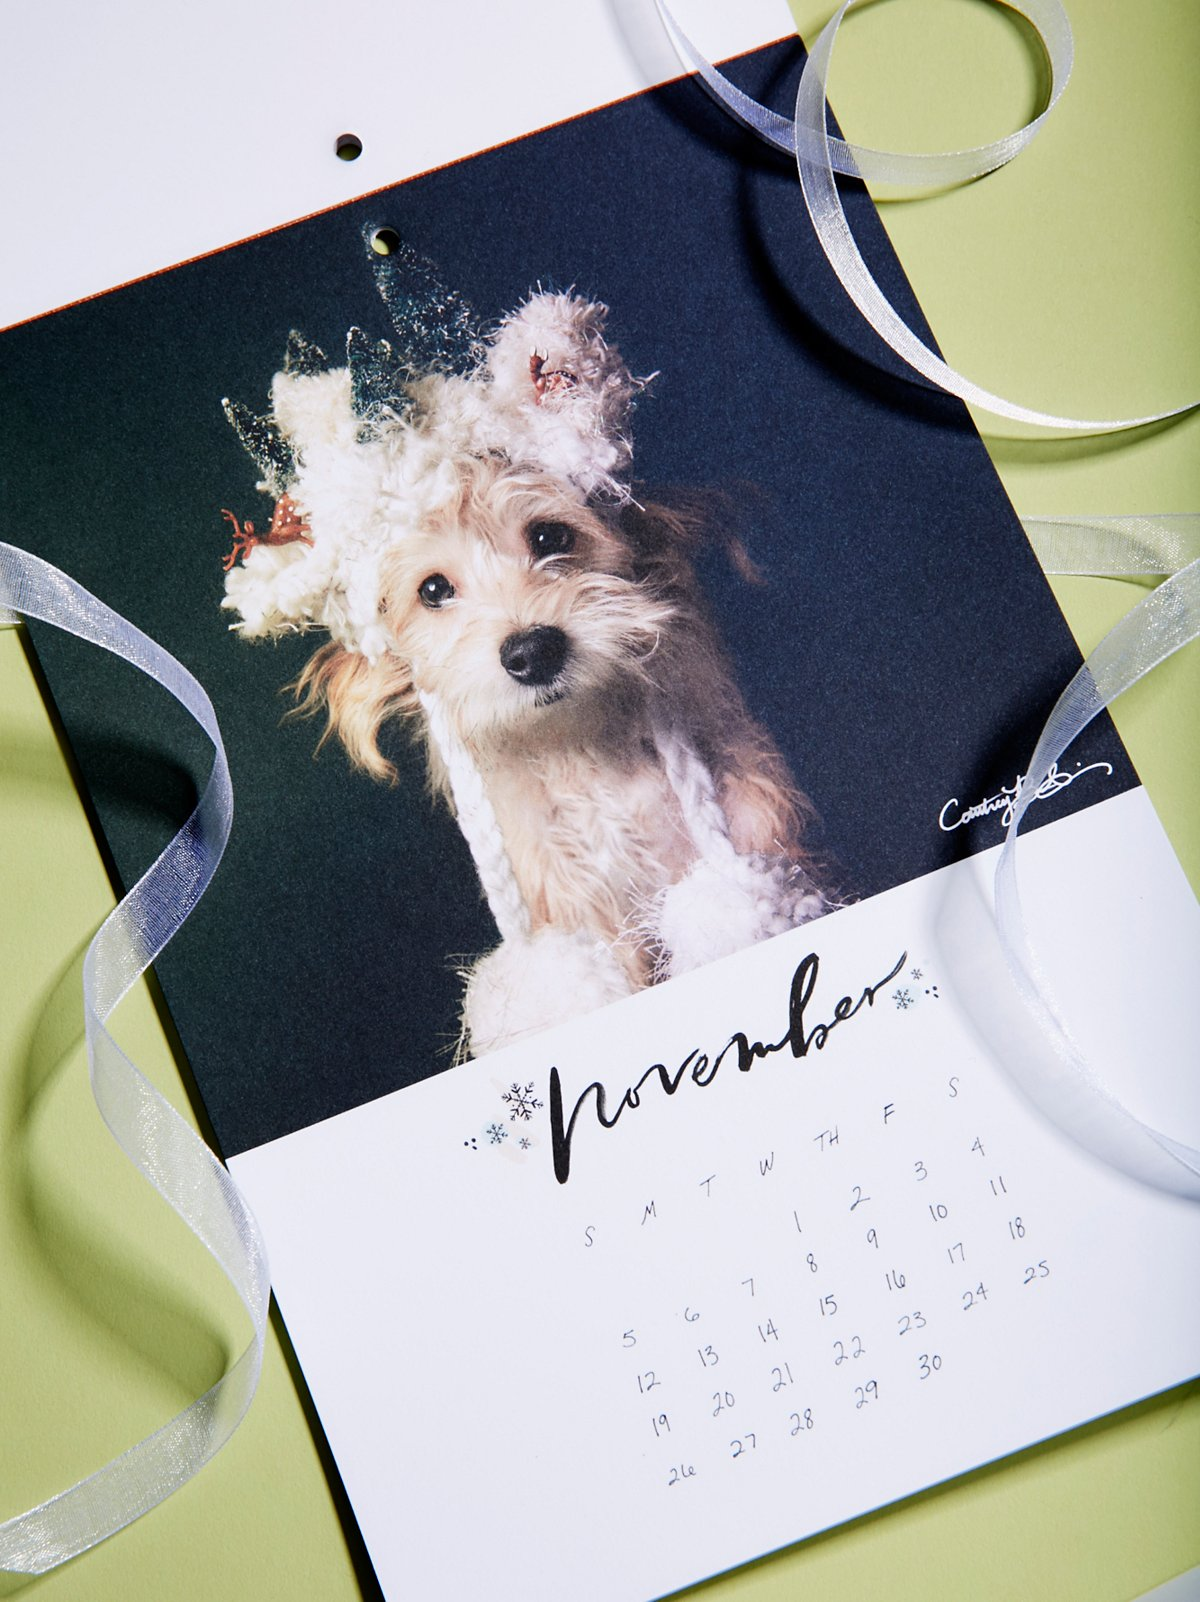 adorable dog calendar